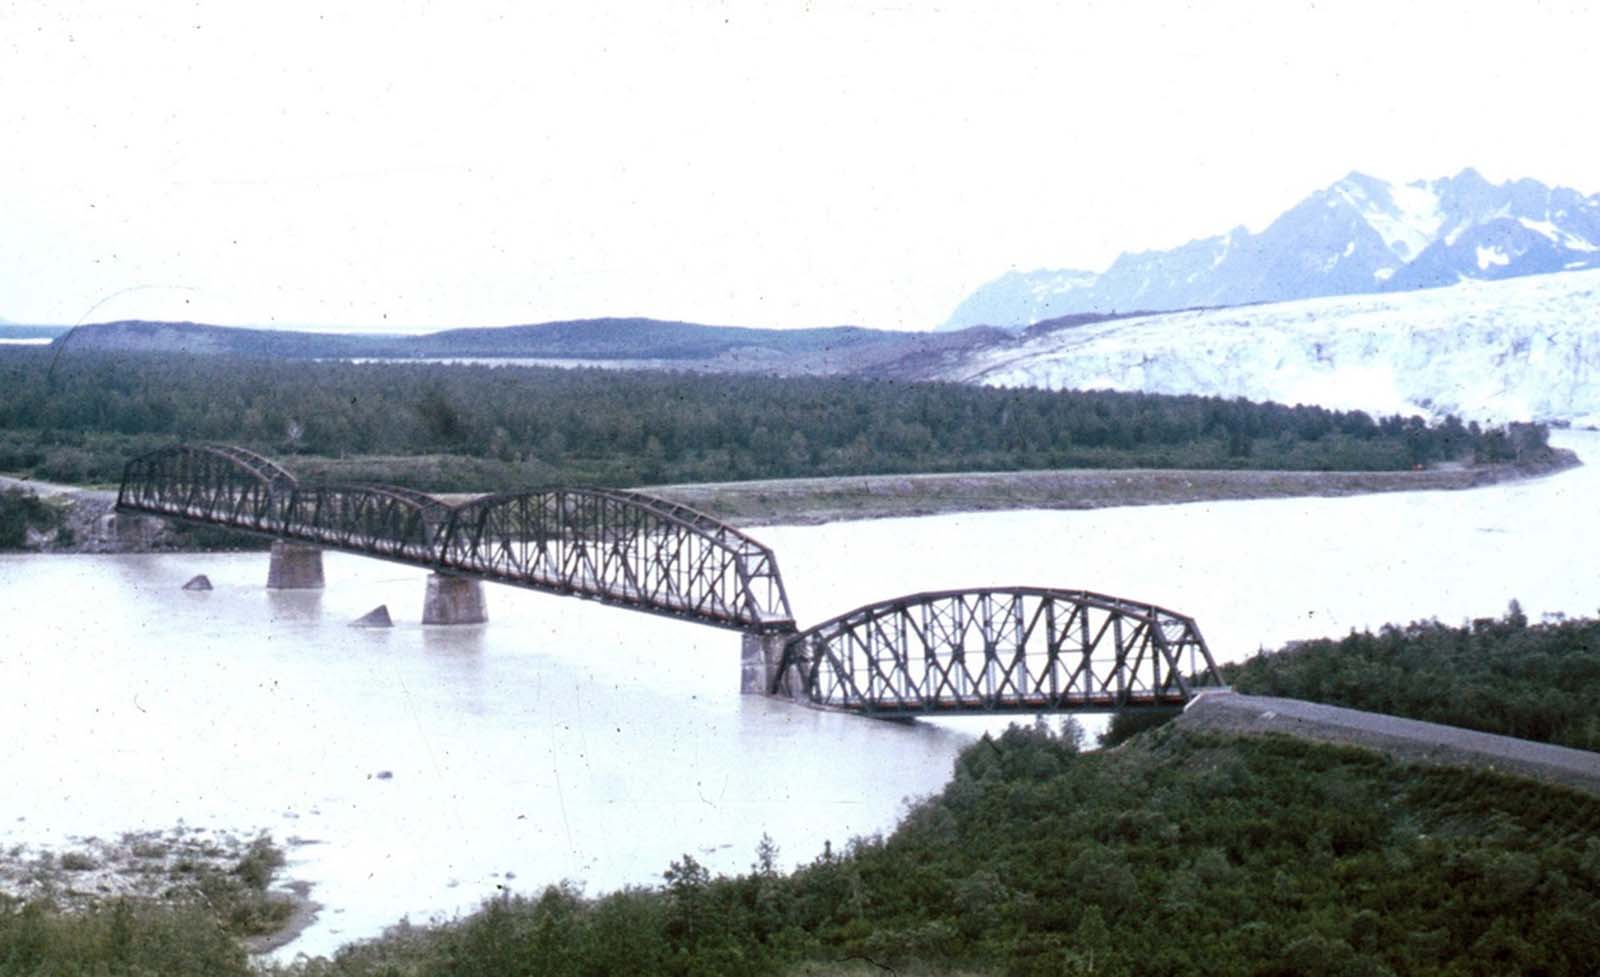 One span of the 'Million Dollar bridge' of the defunct Copper River and Northwestern Railroad was dropped into the Copper River by the earthquake.